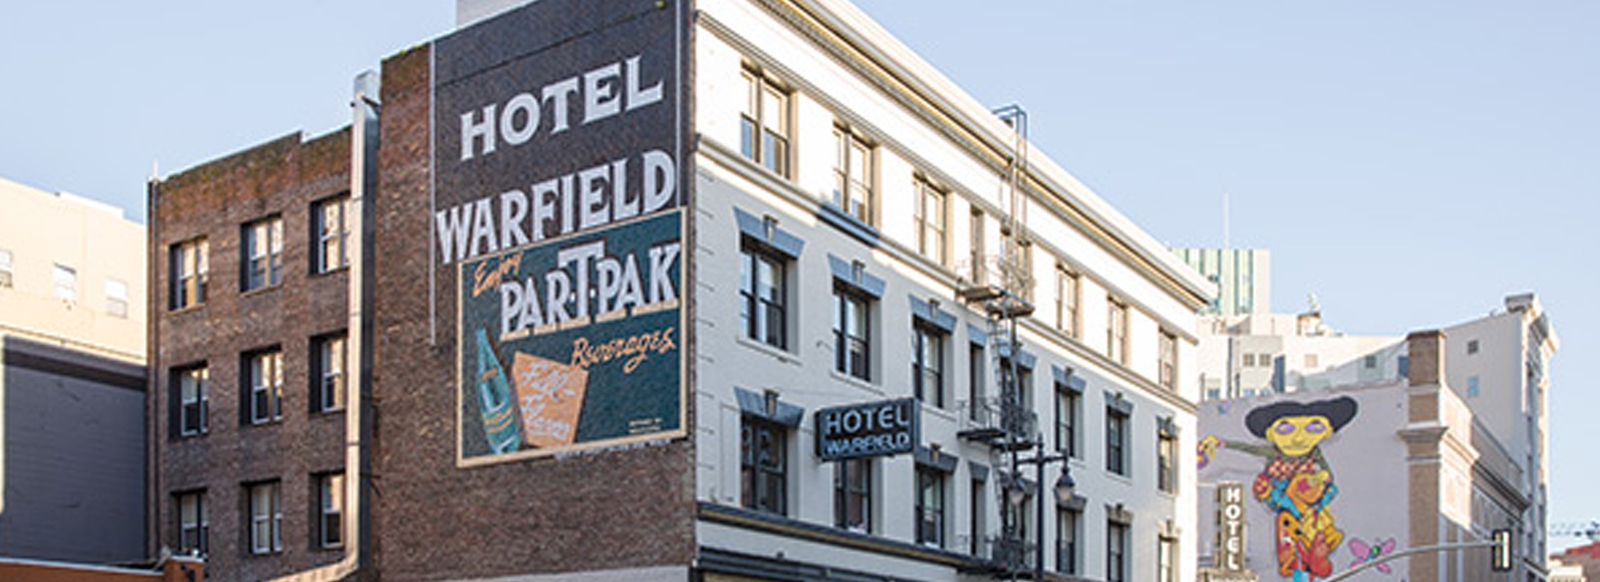 Warfield Hotel (@warfieldhote) Cover Image